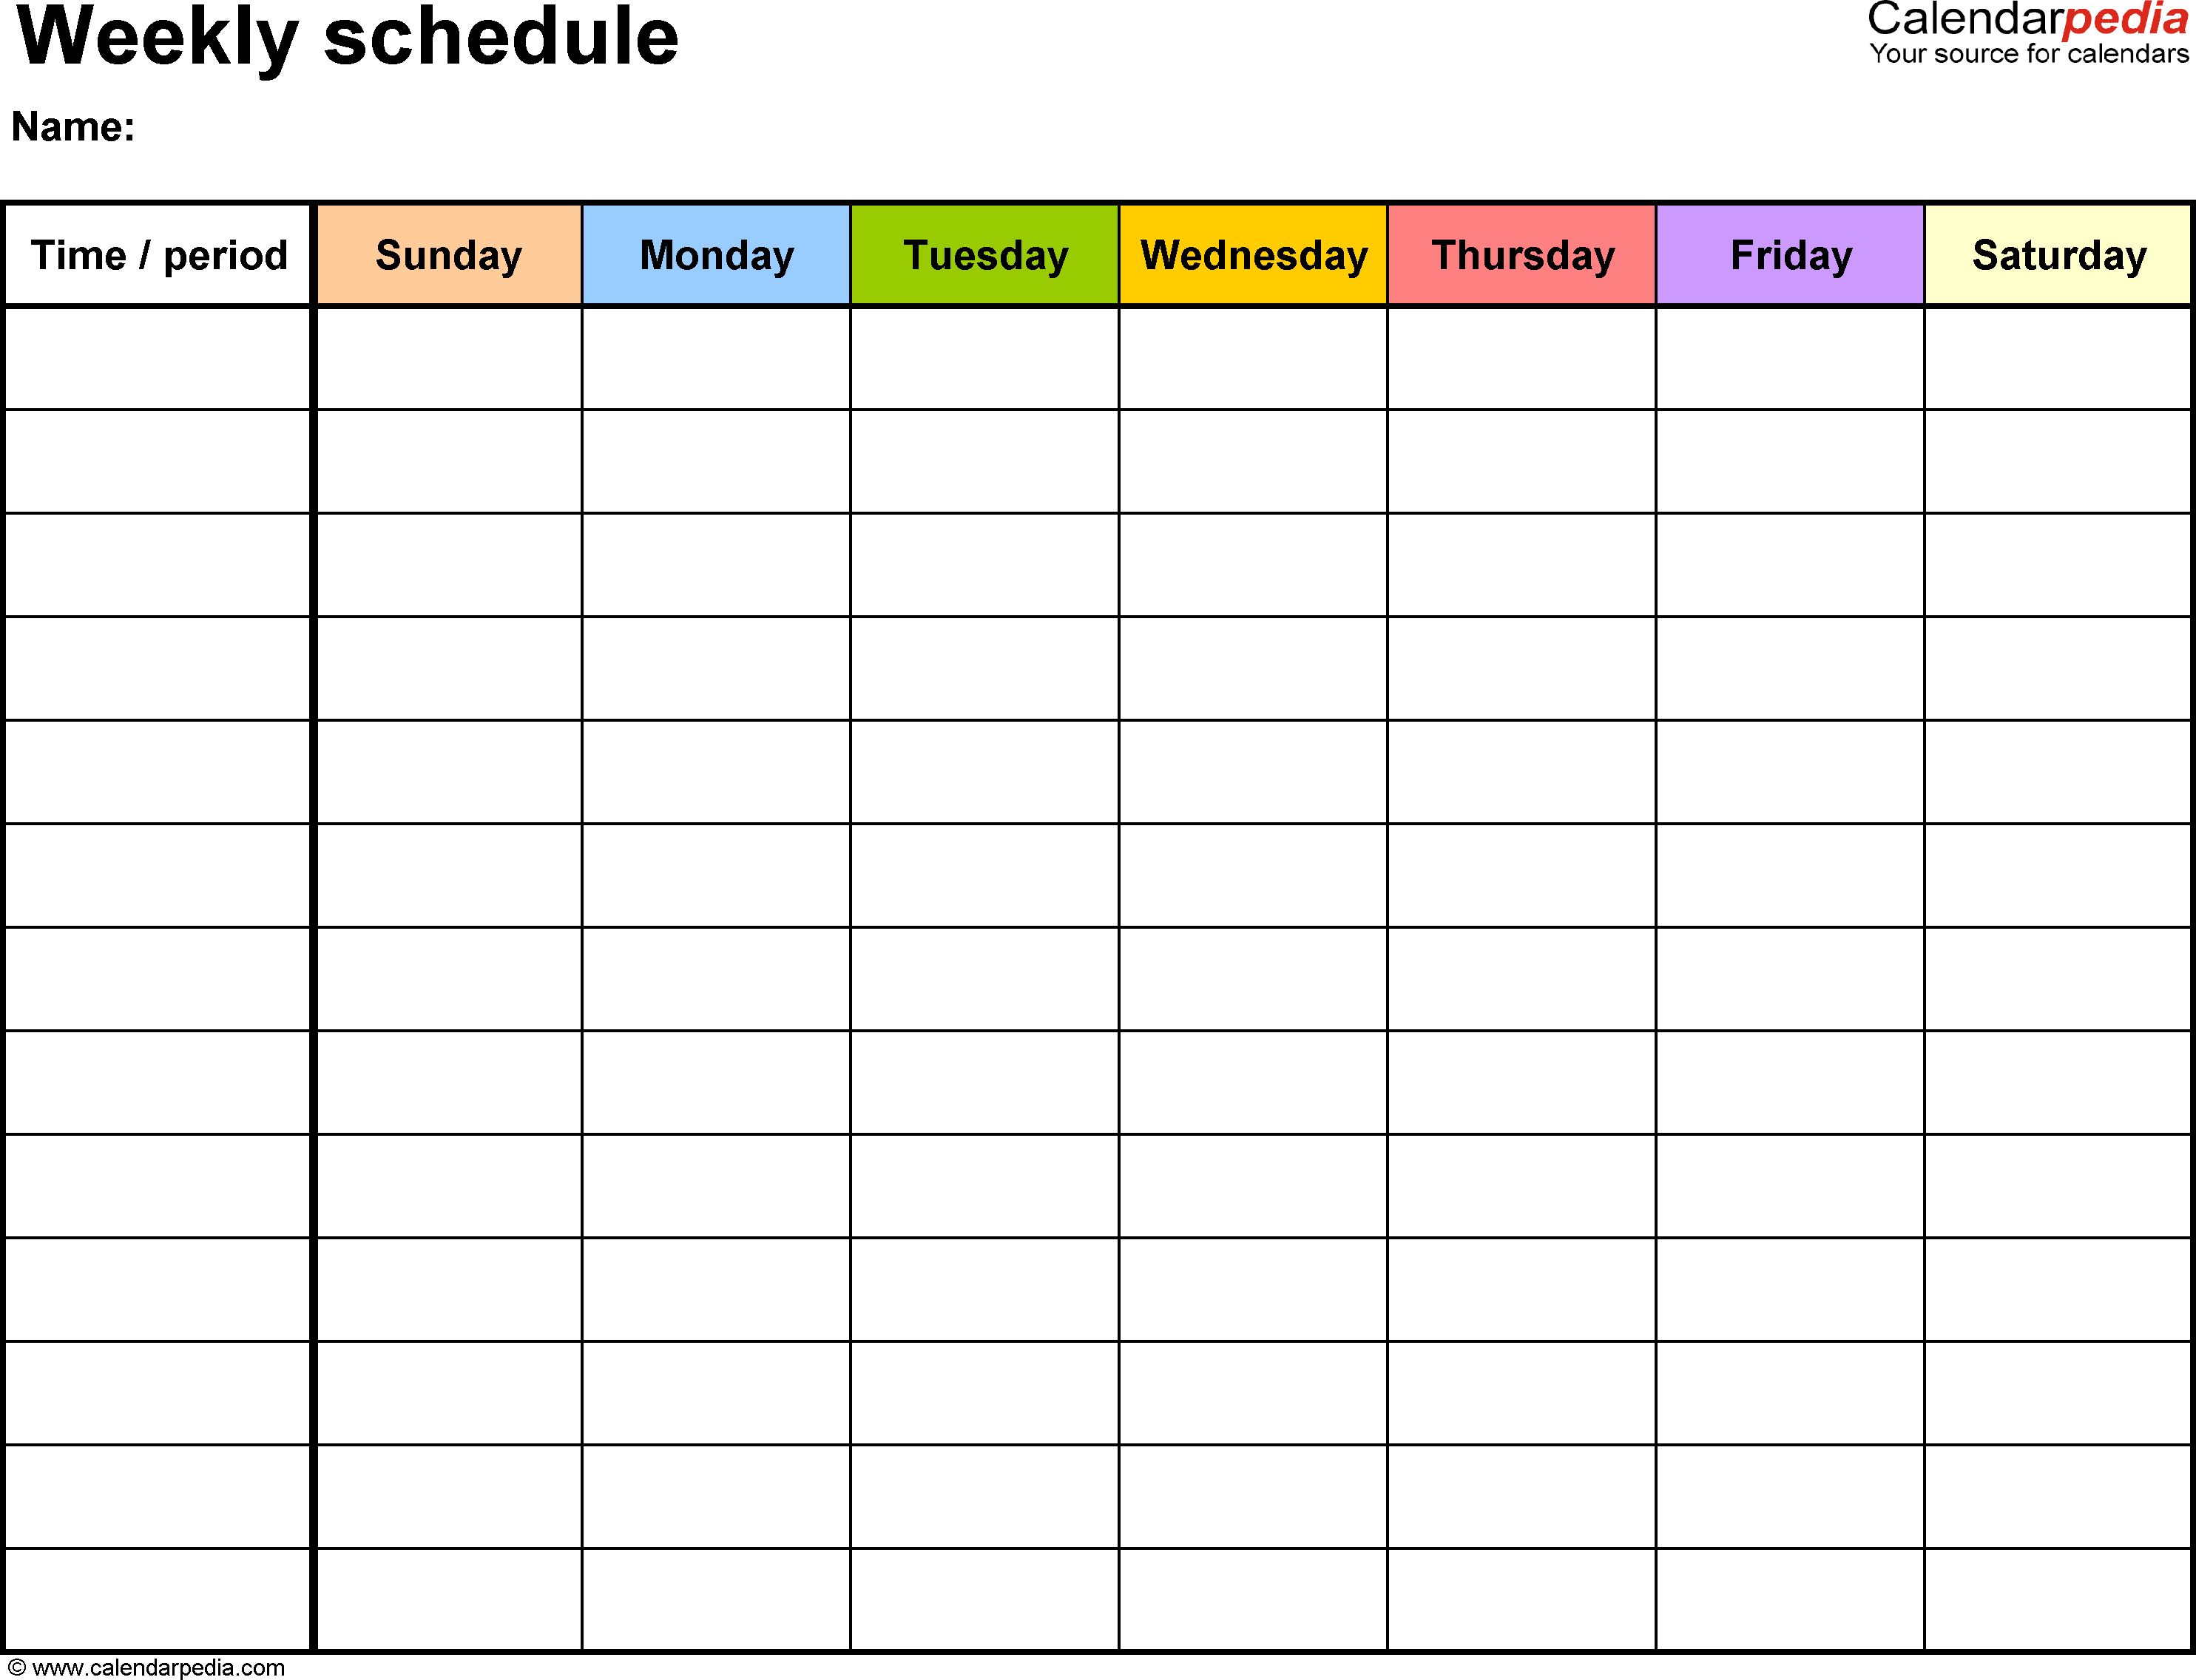 Hourly Calendar Excel  Bolan.horizonconsulting.co regarding Hourly Weekly Schedule Pdf